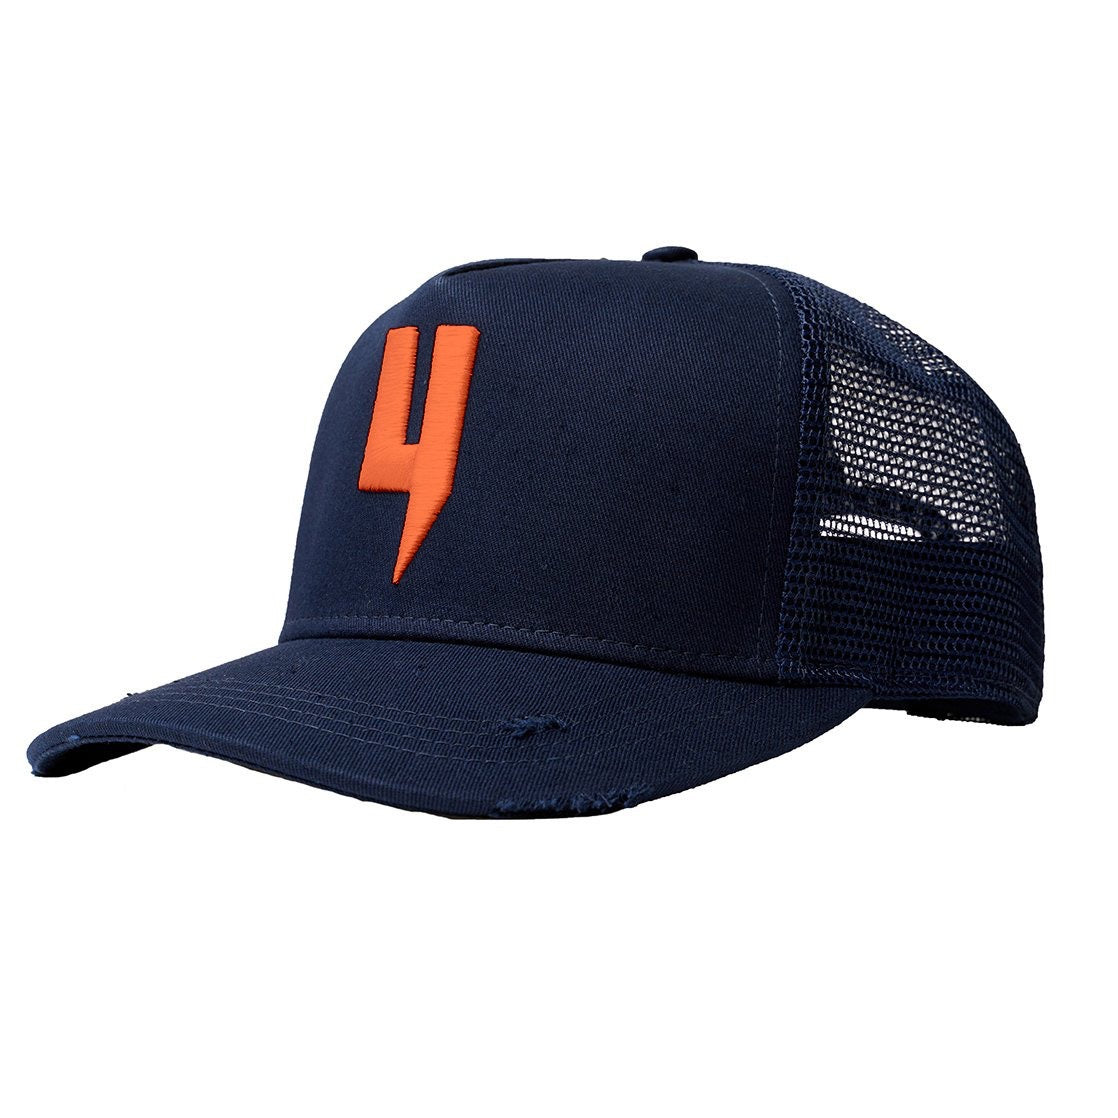 YELIR WORLD Y LOGO CAP NAVY NEON ORANGE